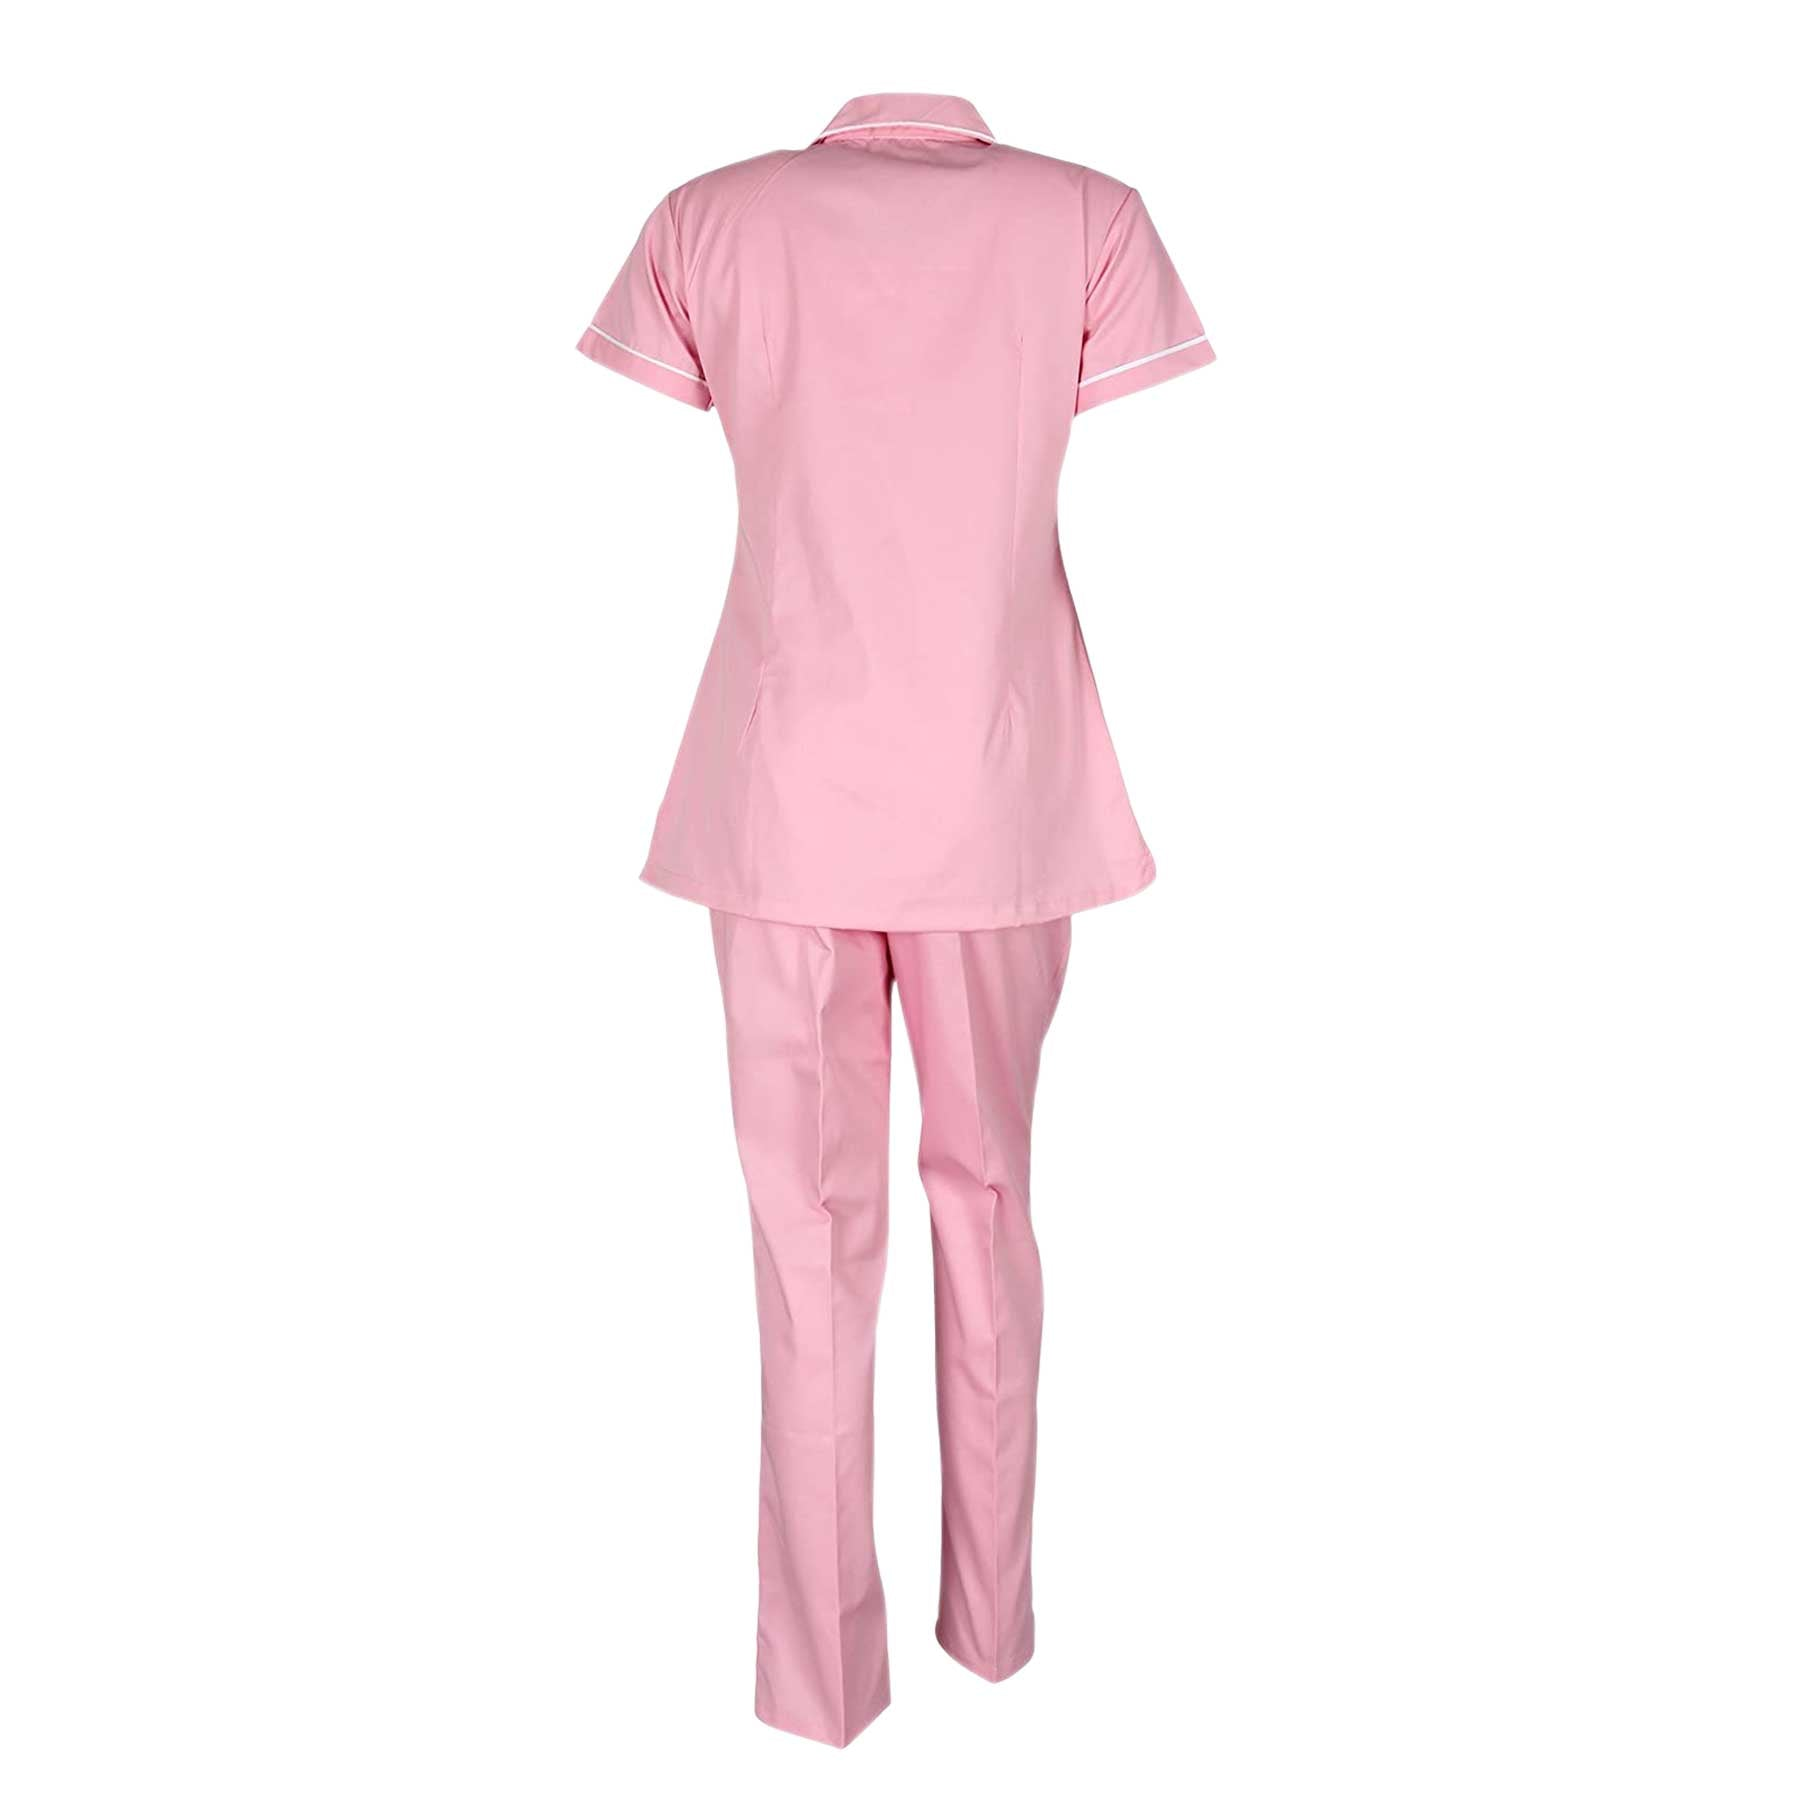 Nurse Dress for Women | Hospital Uniform, 1512 Light Pink and White